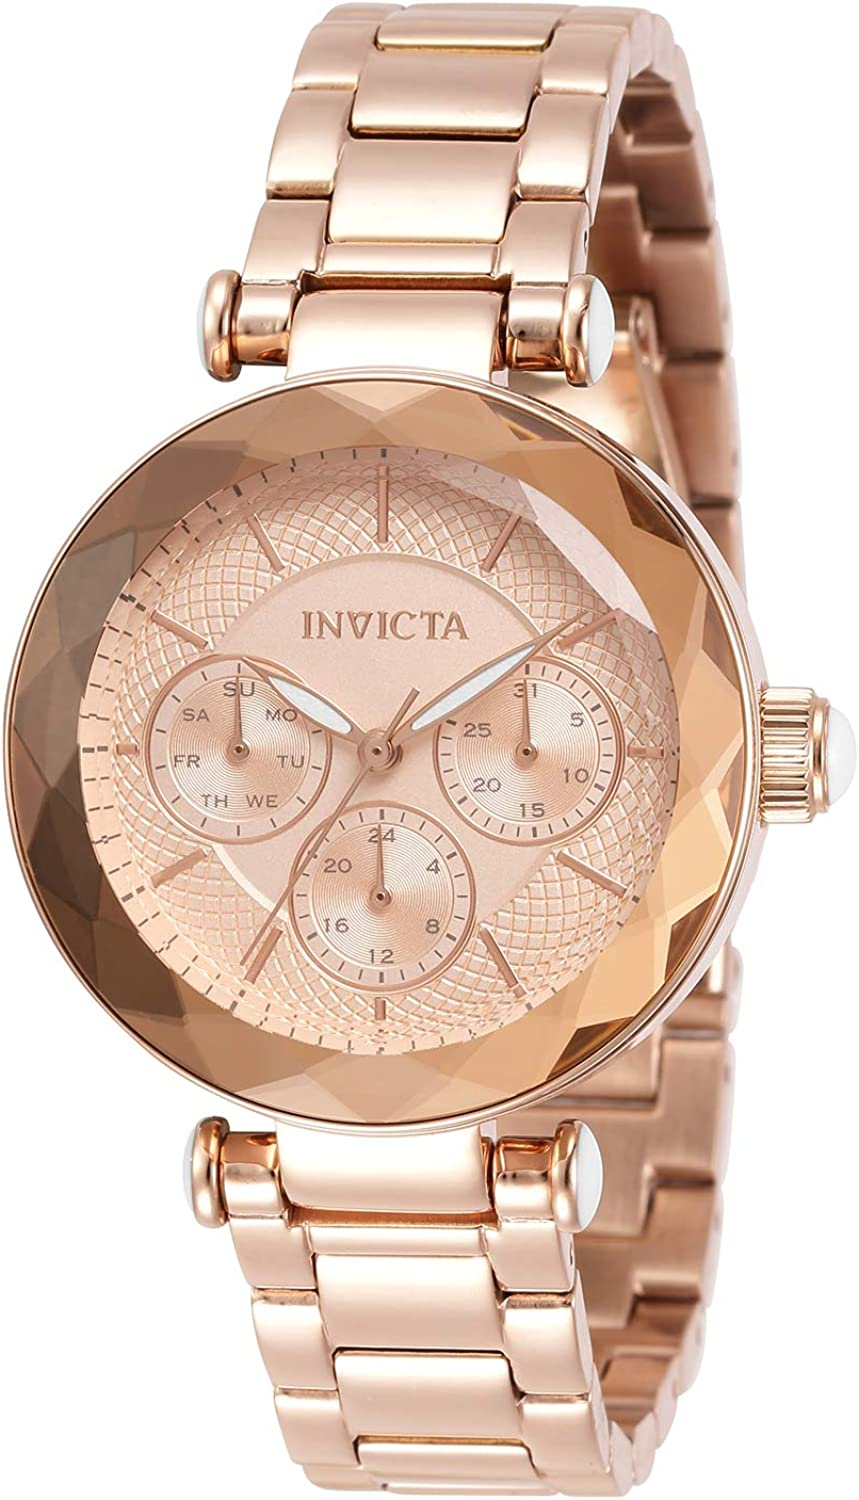 Invicta Women's Angel Quartz Watch with Stainless Steel Strap, Rose Gold, 16 (Model: 31272)